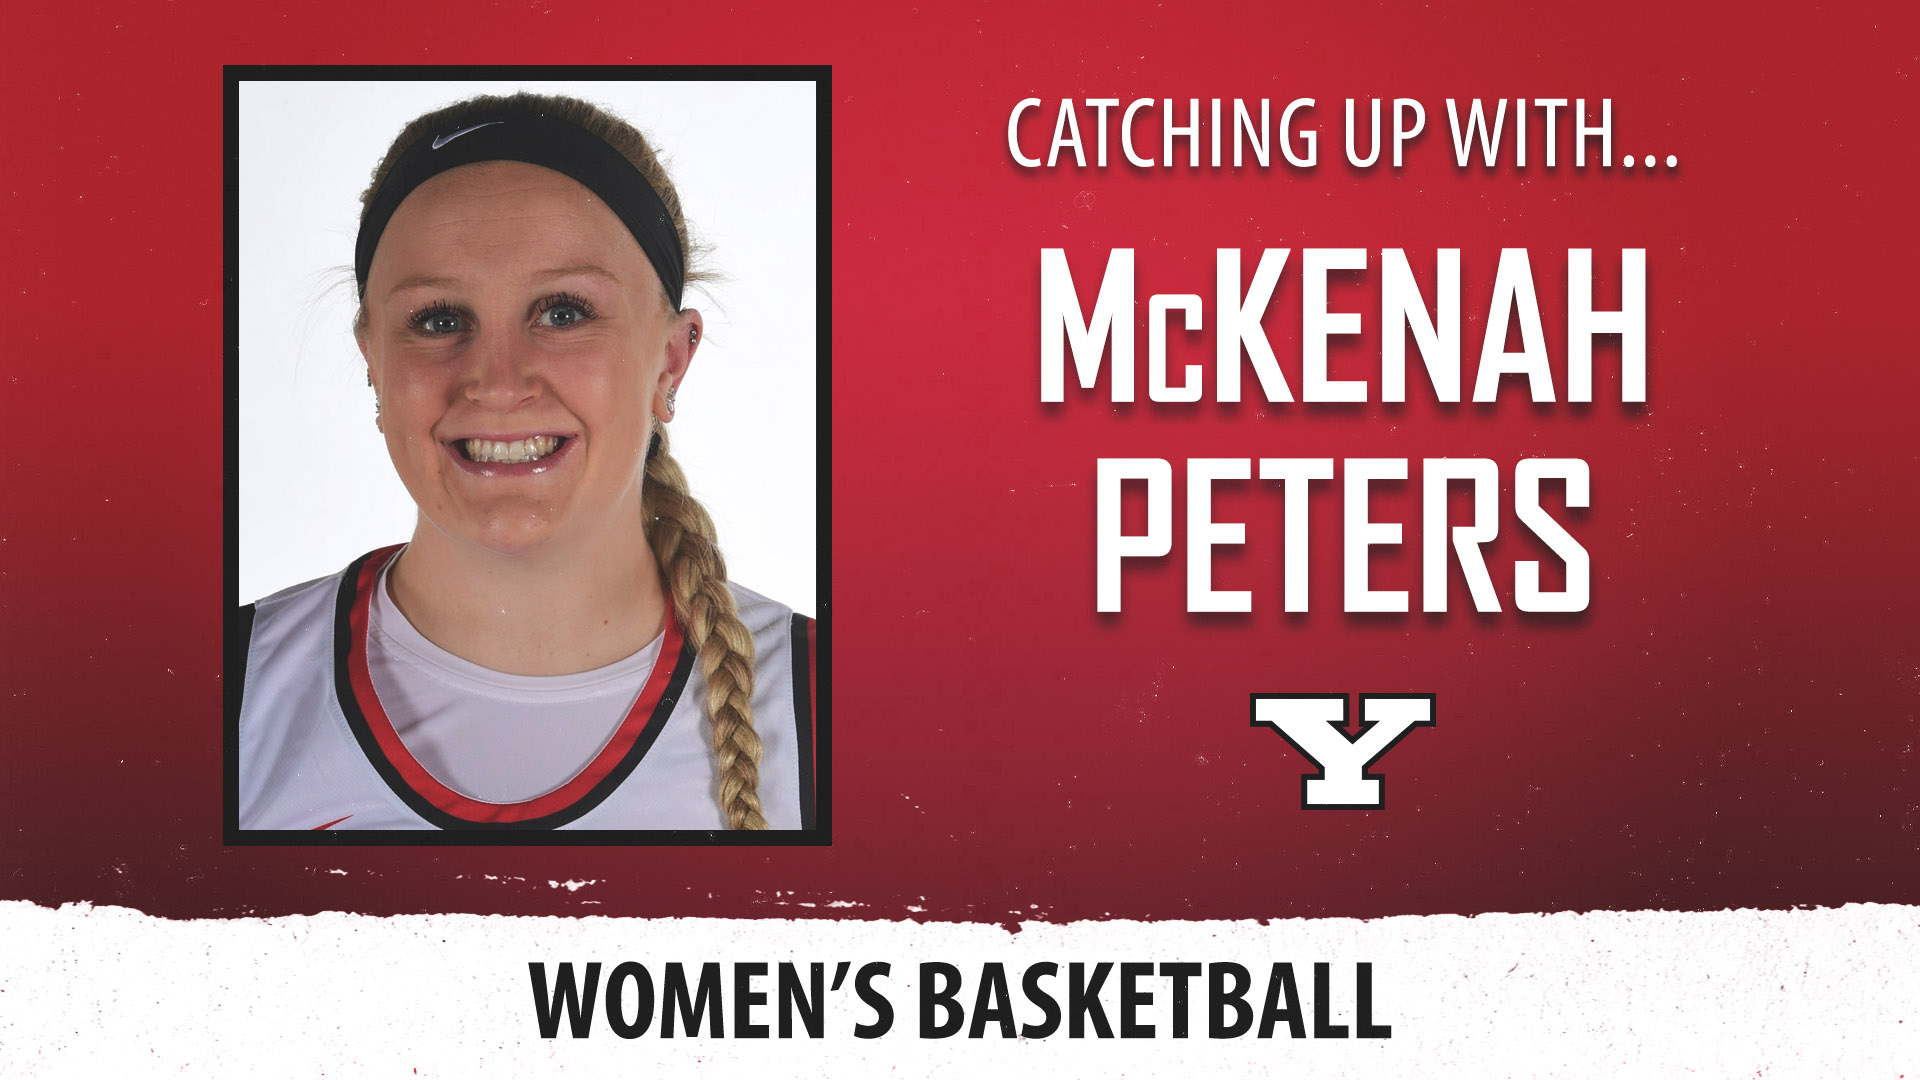 Catching up with McKenah Peters